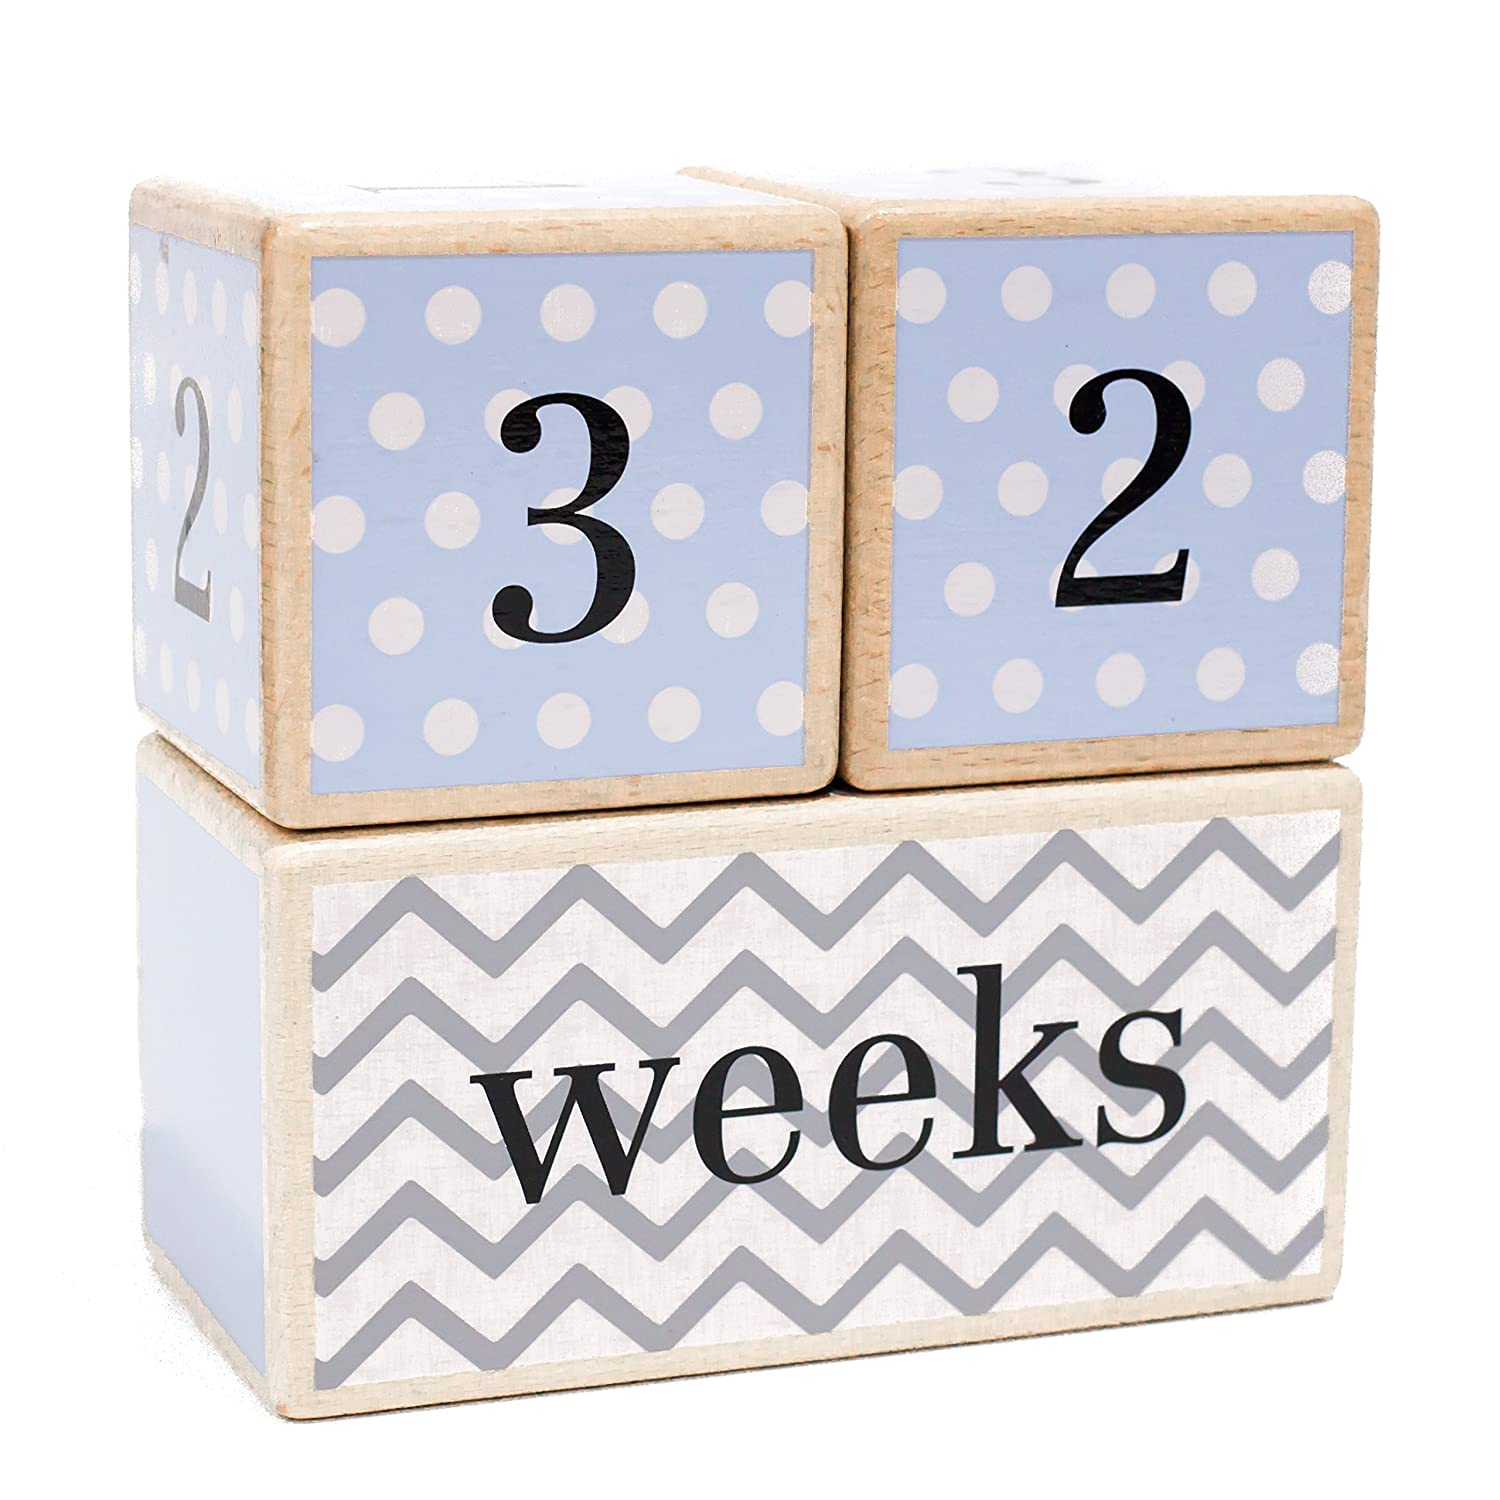 Premium Solid Wood Milestone Age Blocks | Choose from 3 Different Color Styles (Blue) | Baby Age Photo Blocks | Perfect Baby Shower Gift and Keepsake by LovelySprouts